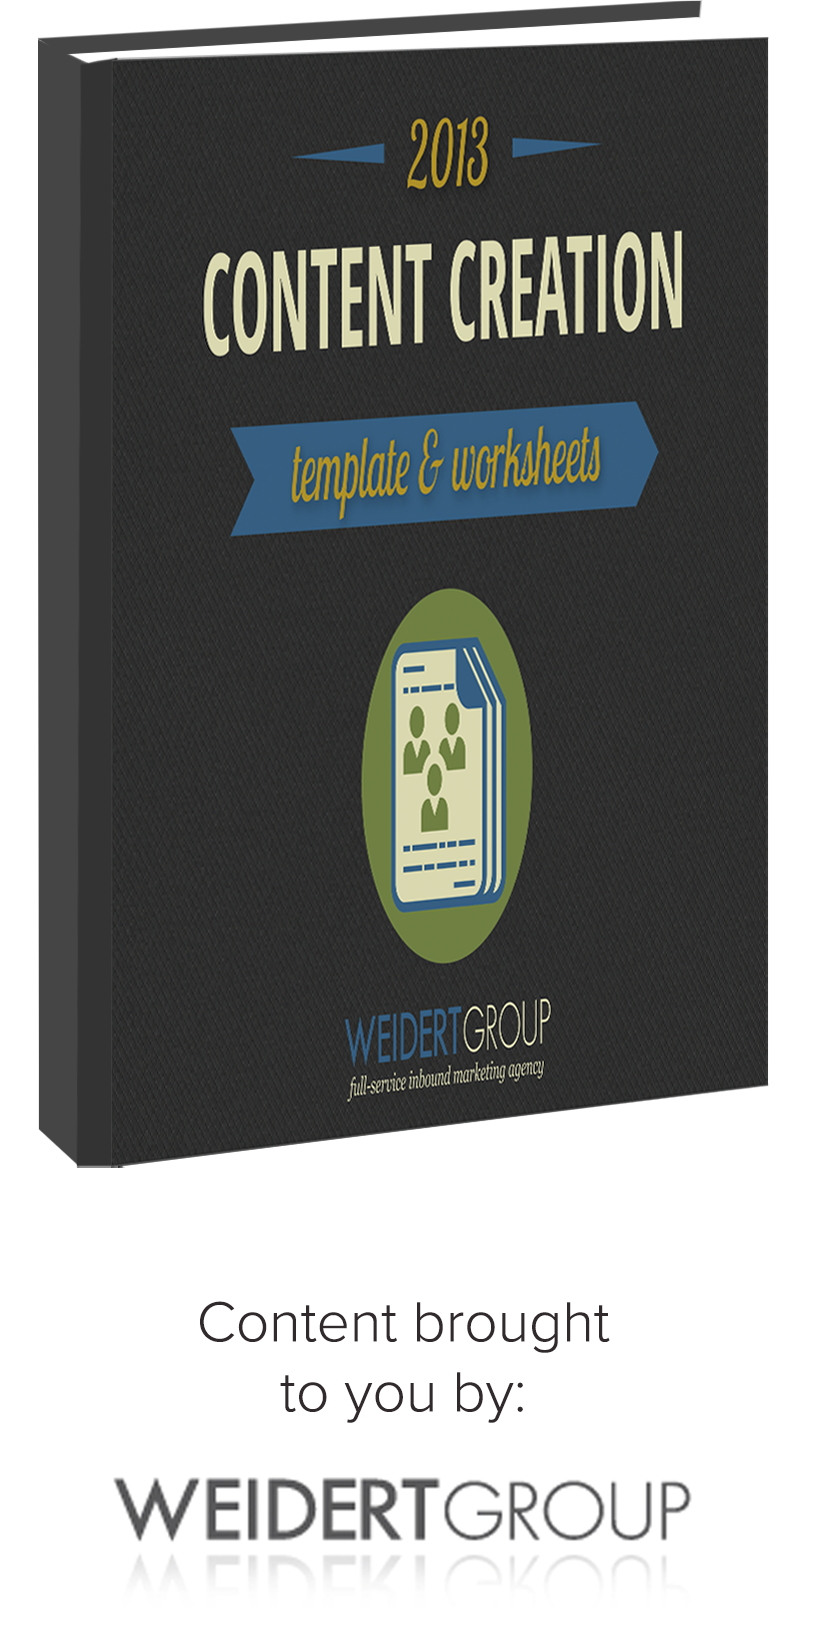 Free Ebook Content Creation Templates And Worksheets - Content creation template